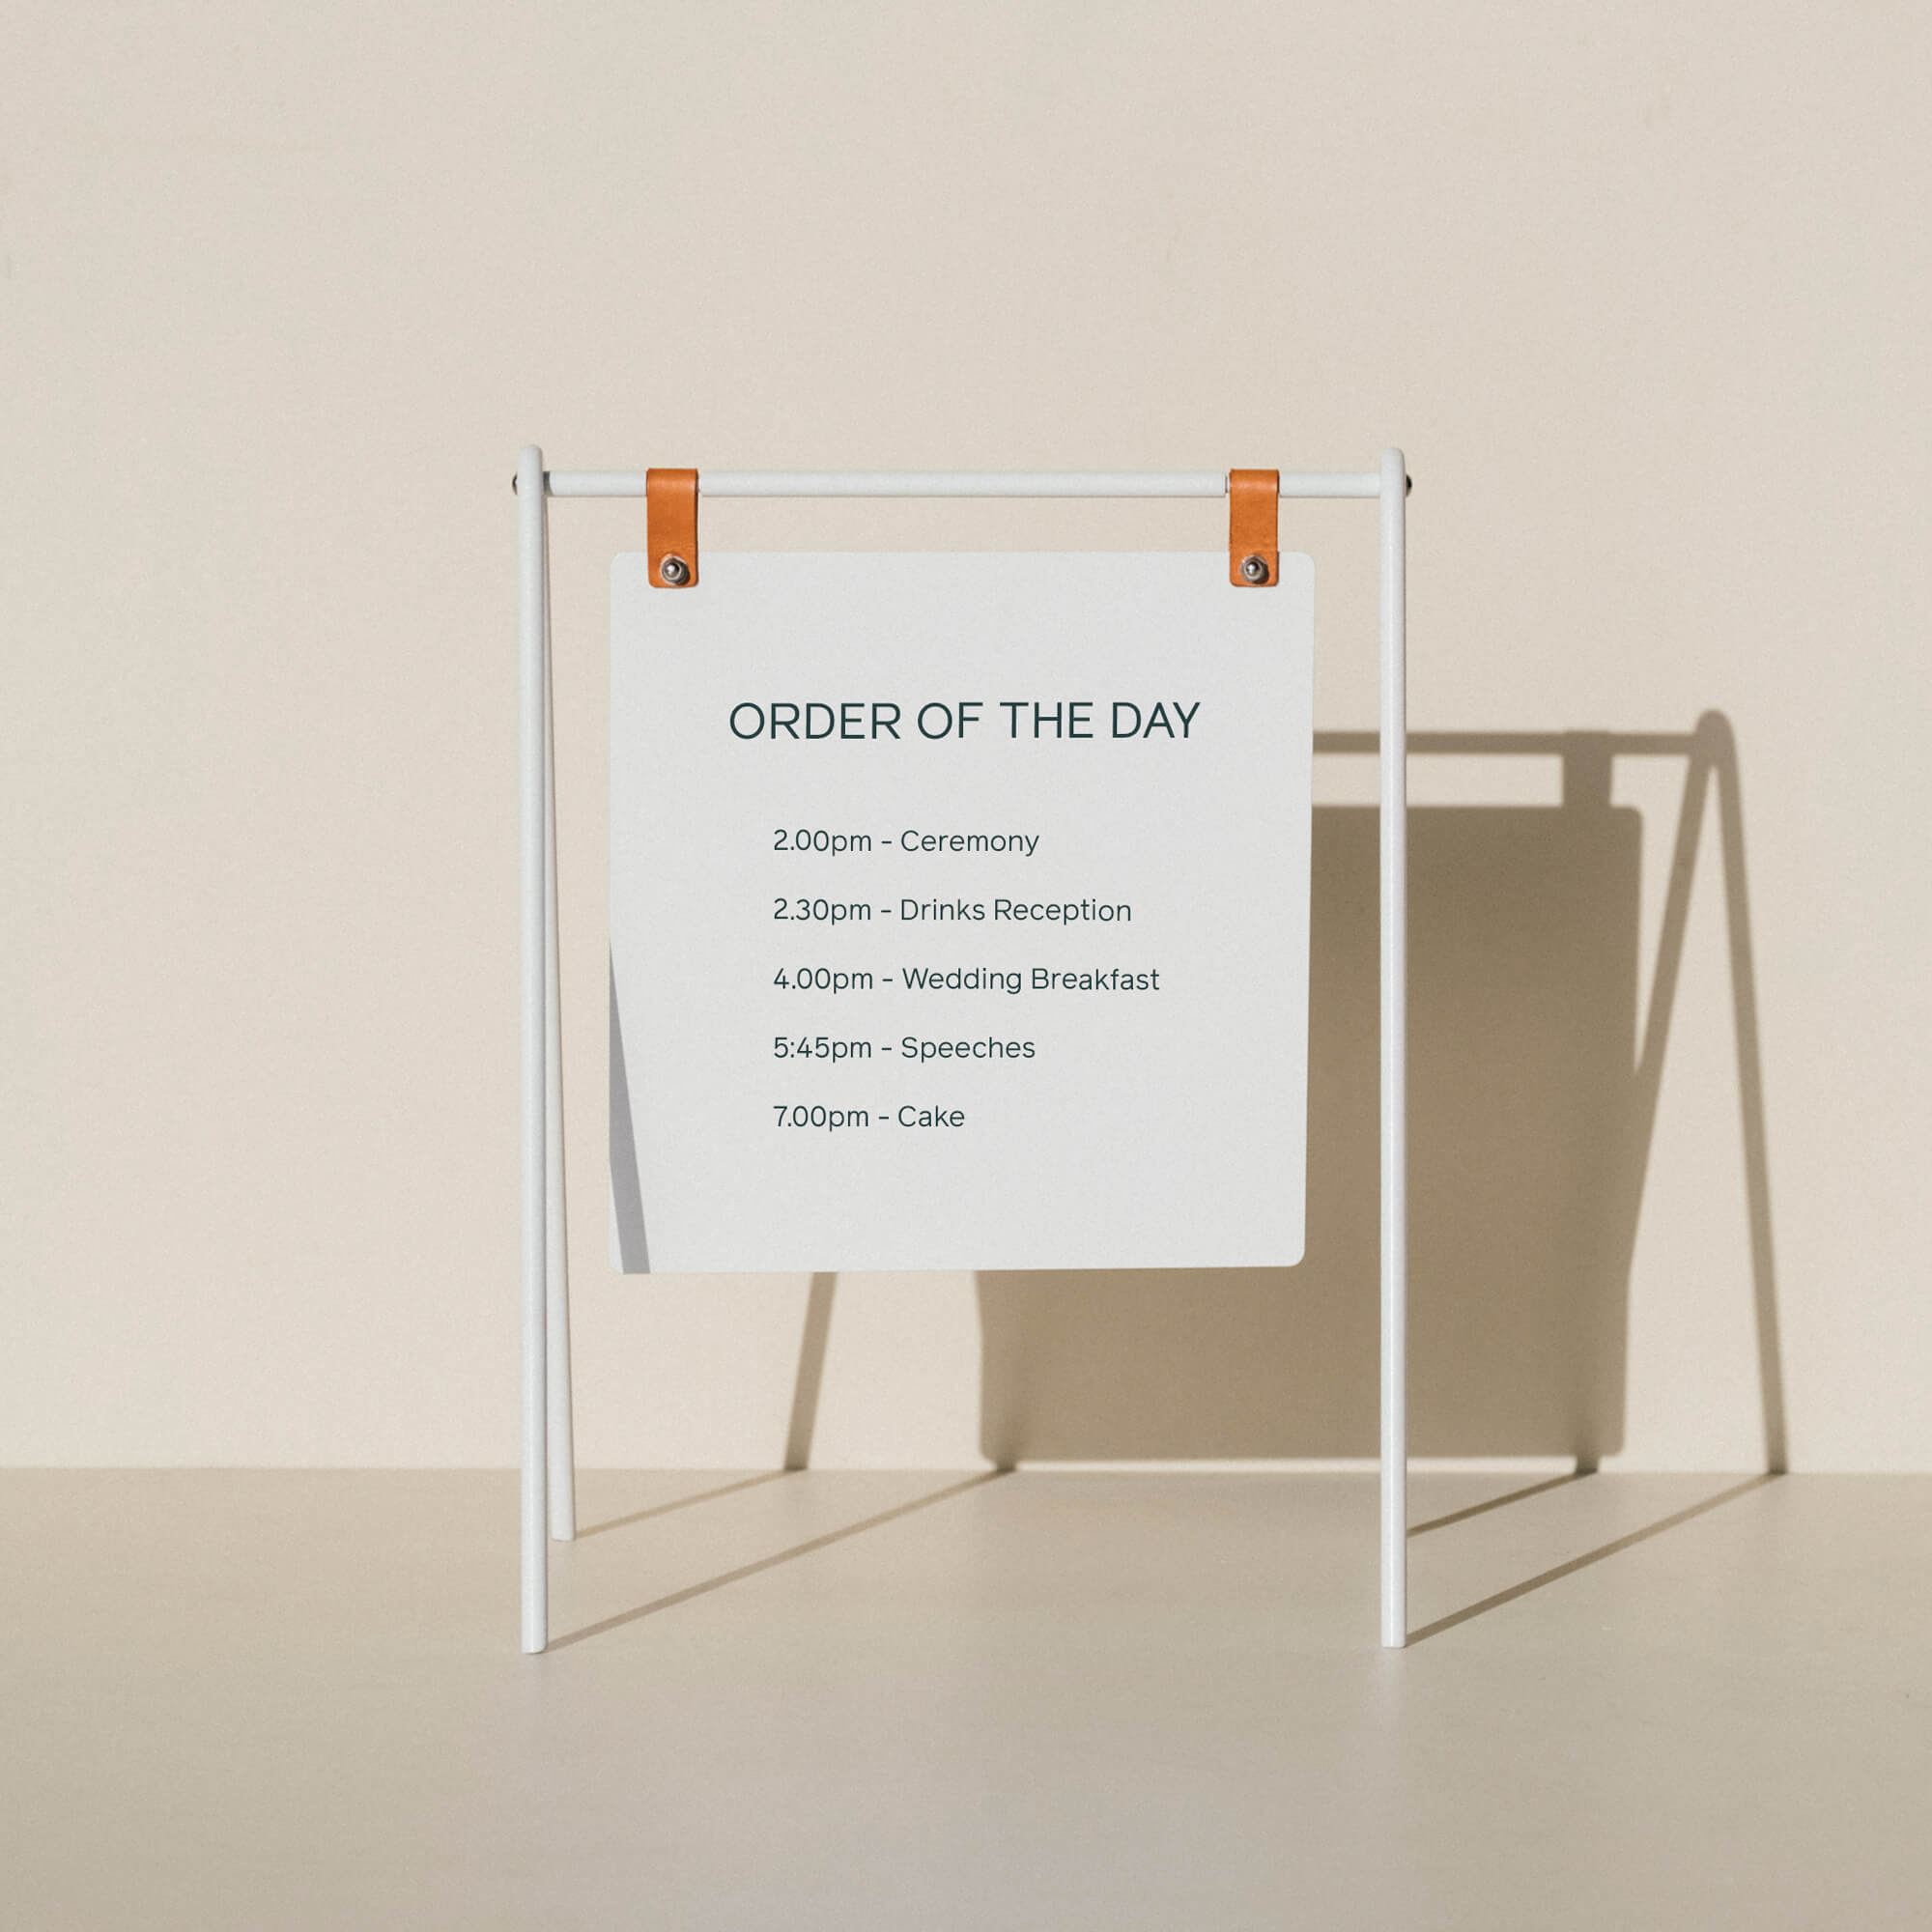 A miniature white A-frame sign displaying an order of the day for a wedding